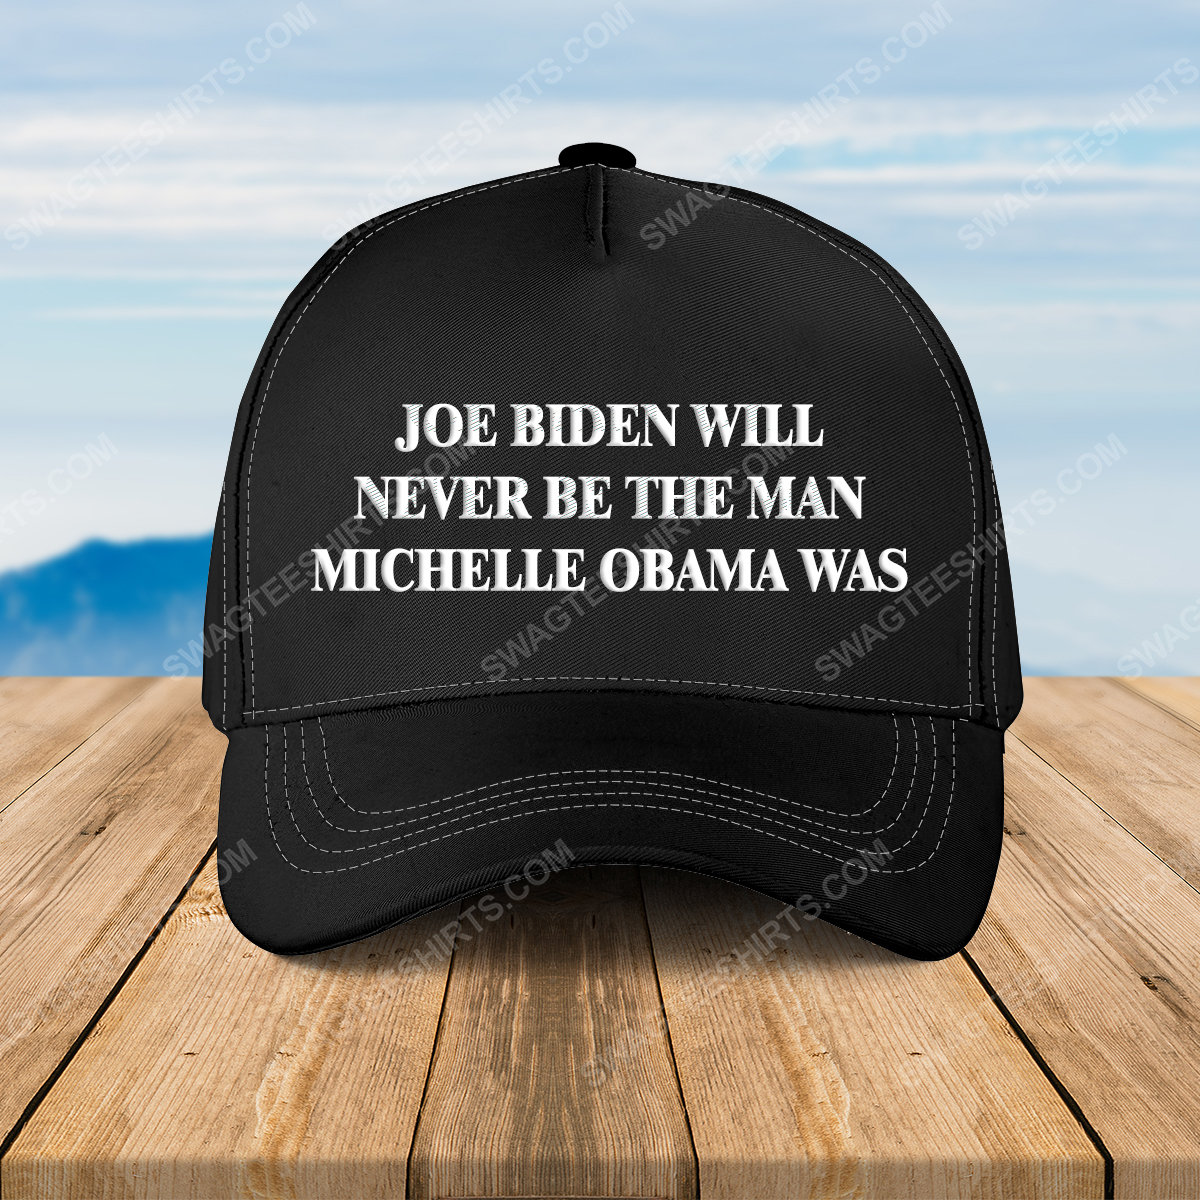 Joe biden will never be the man michelle obama was full print classic hat 1